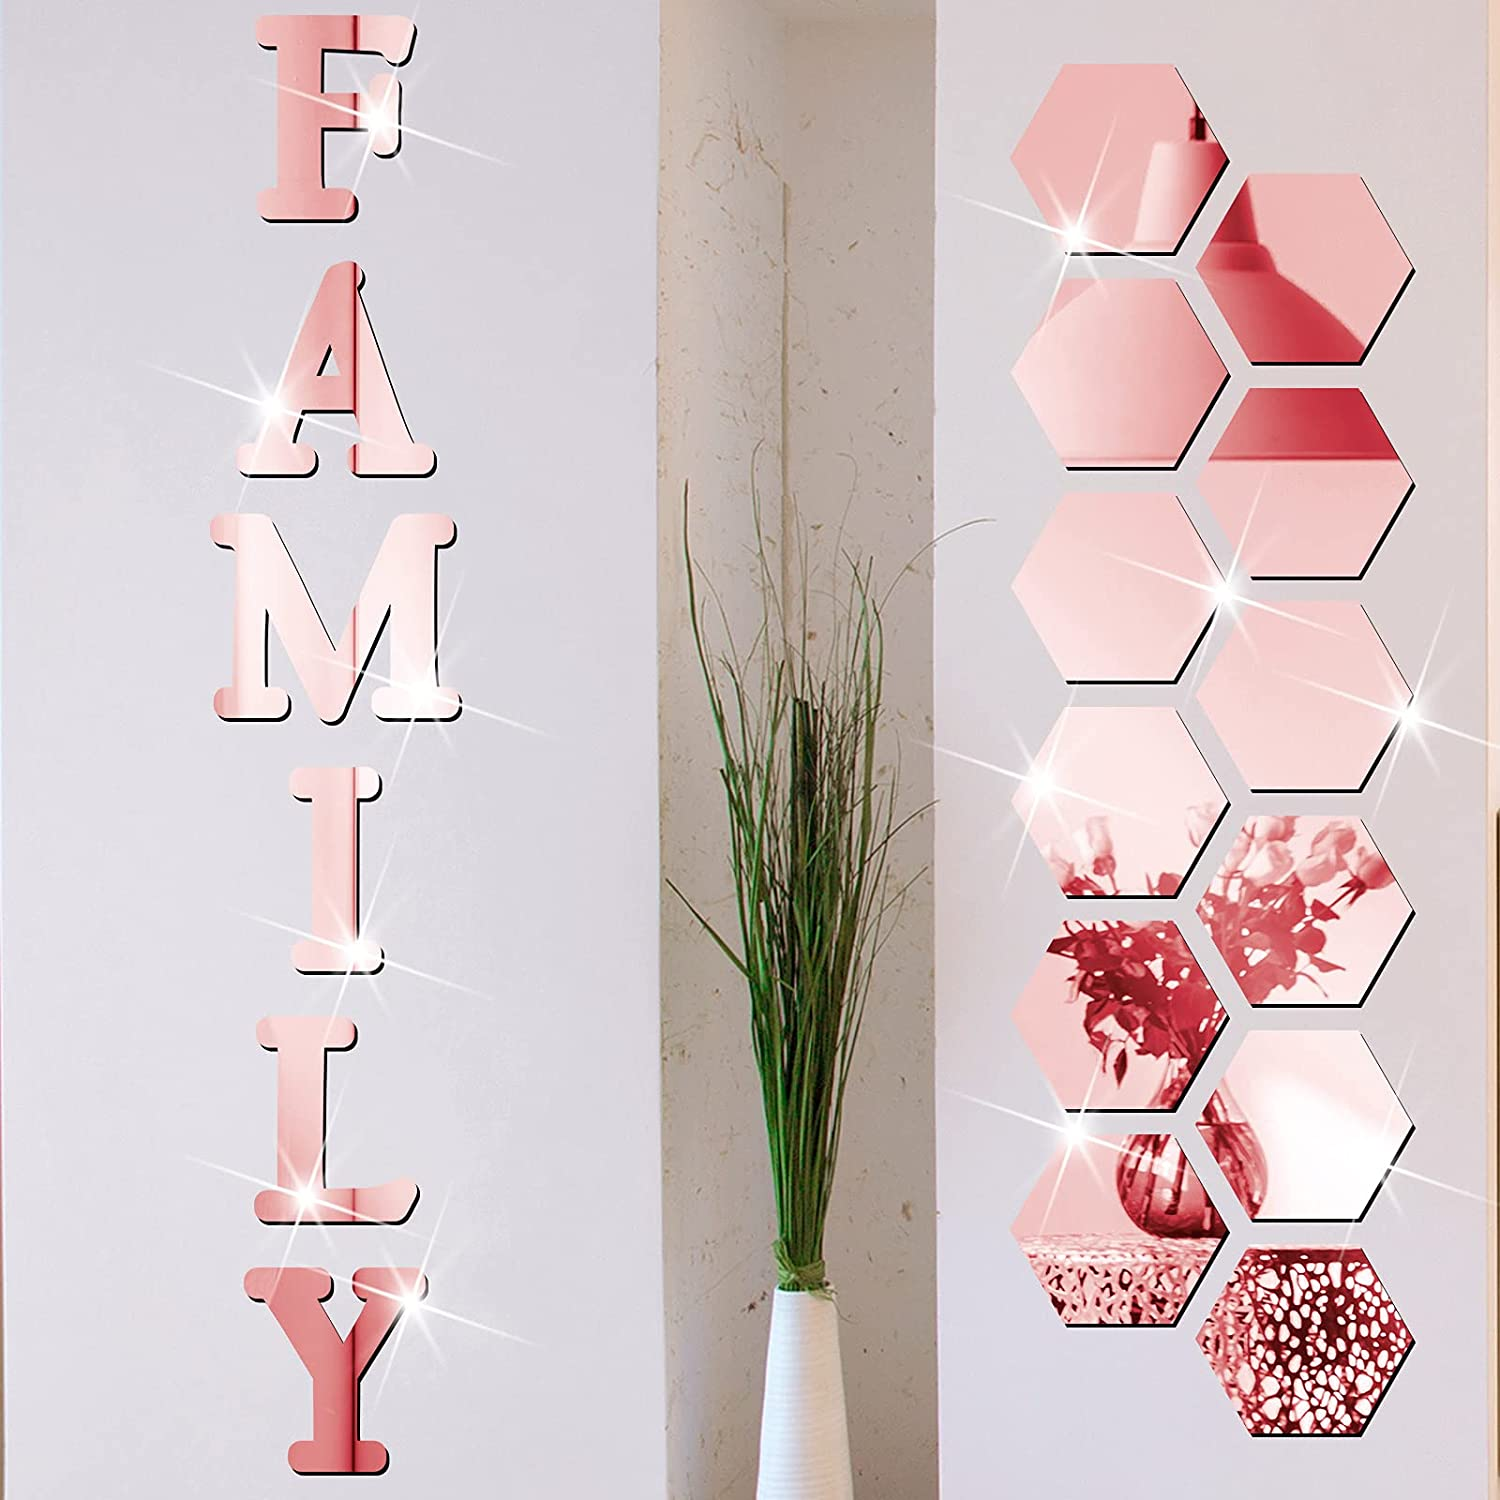 18 Pieces Acrylic Mirror Wall Stickers Family Sign Letters Rustic Farmhouse Wall Decor Removable Acrylic Mirror Setting Wall Sticker Decal for Living Room Bedroom Kitchen Decorations (Rose Gold)